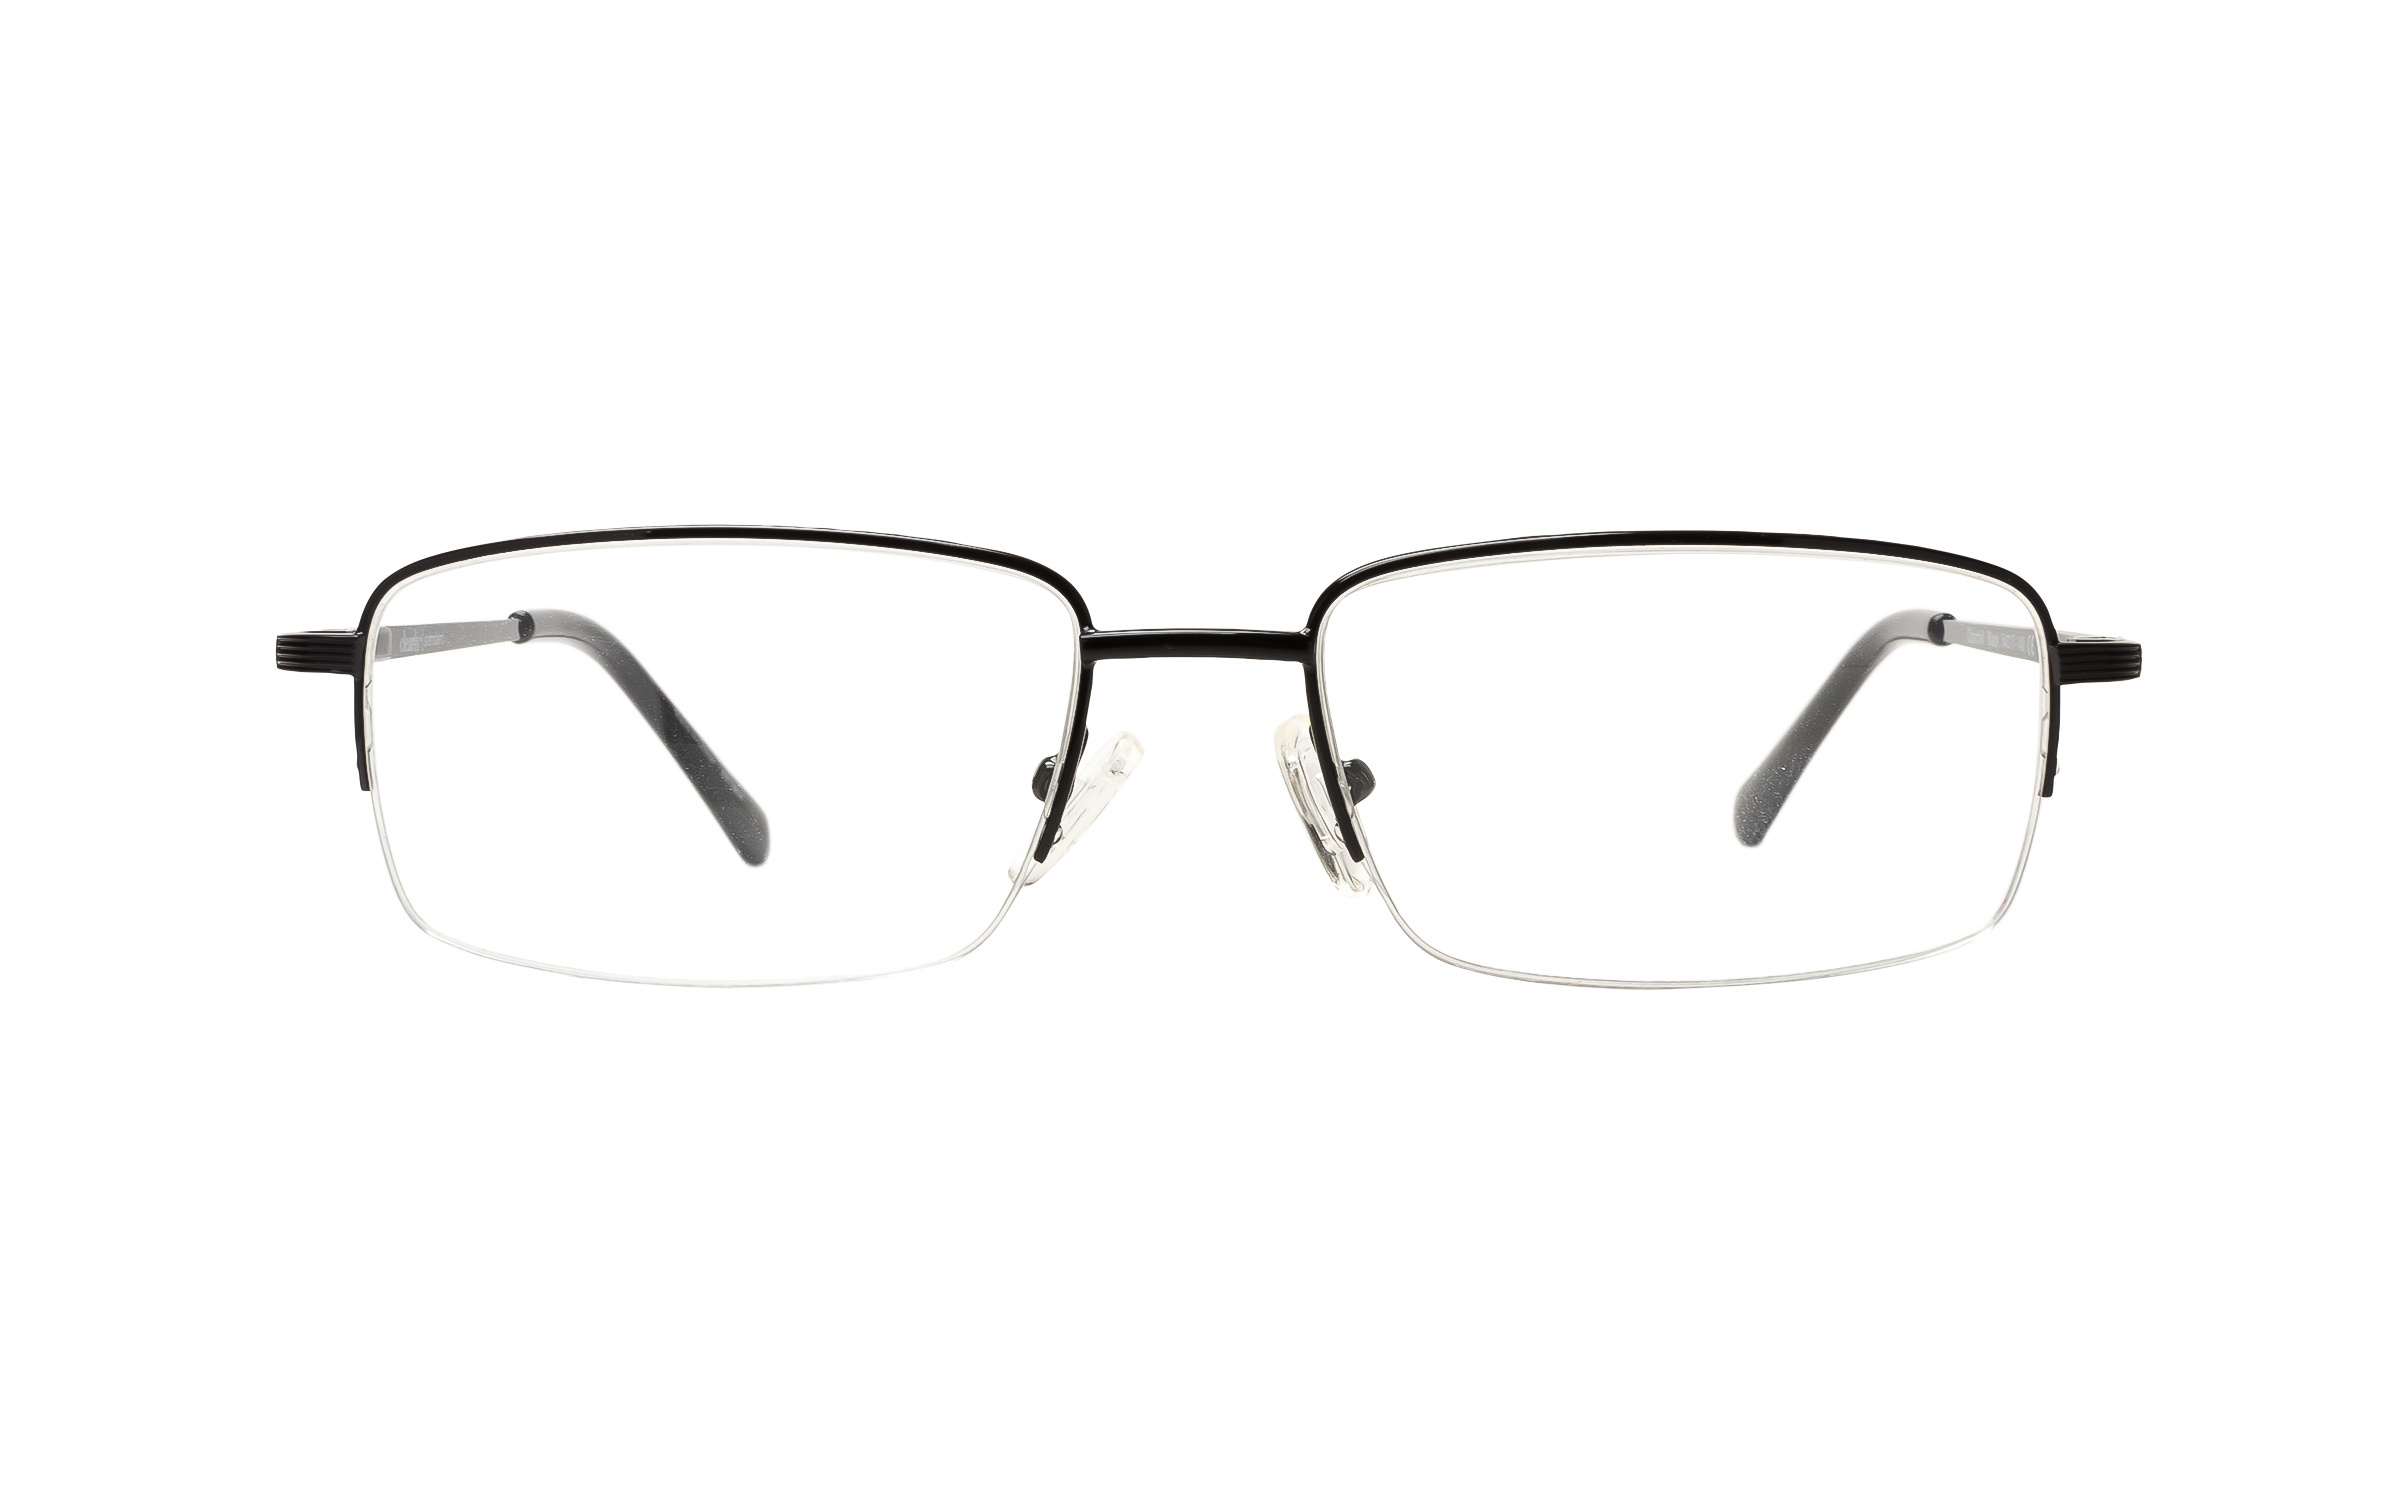 Clearly Basics Churchill (54) Eyeglasses and Frame in Black | Plastic - Online